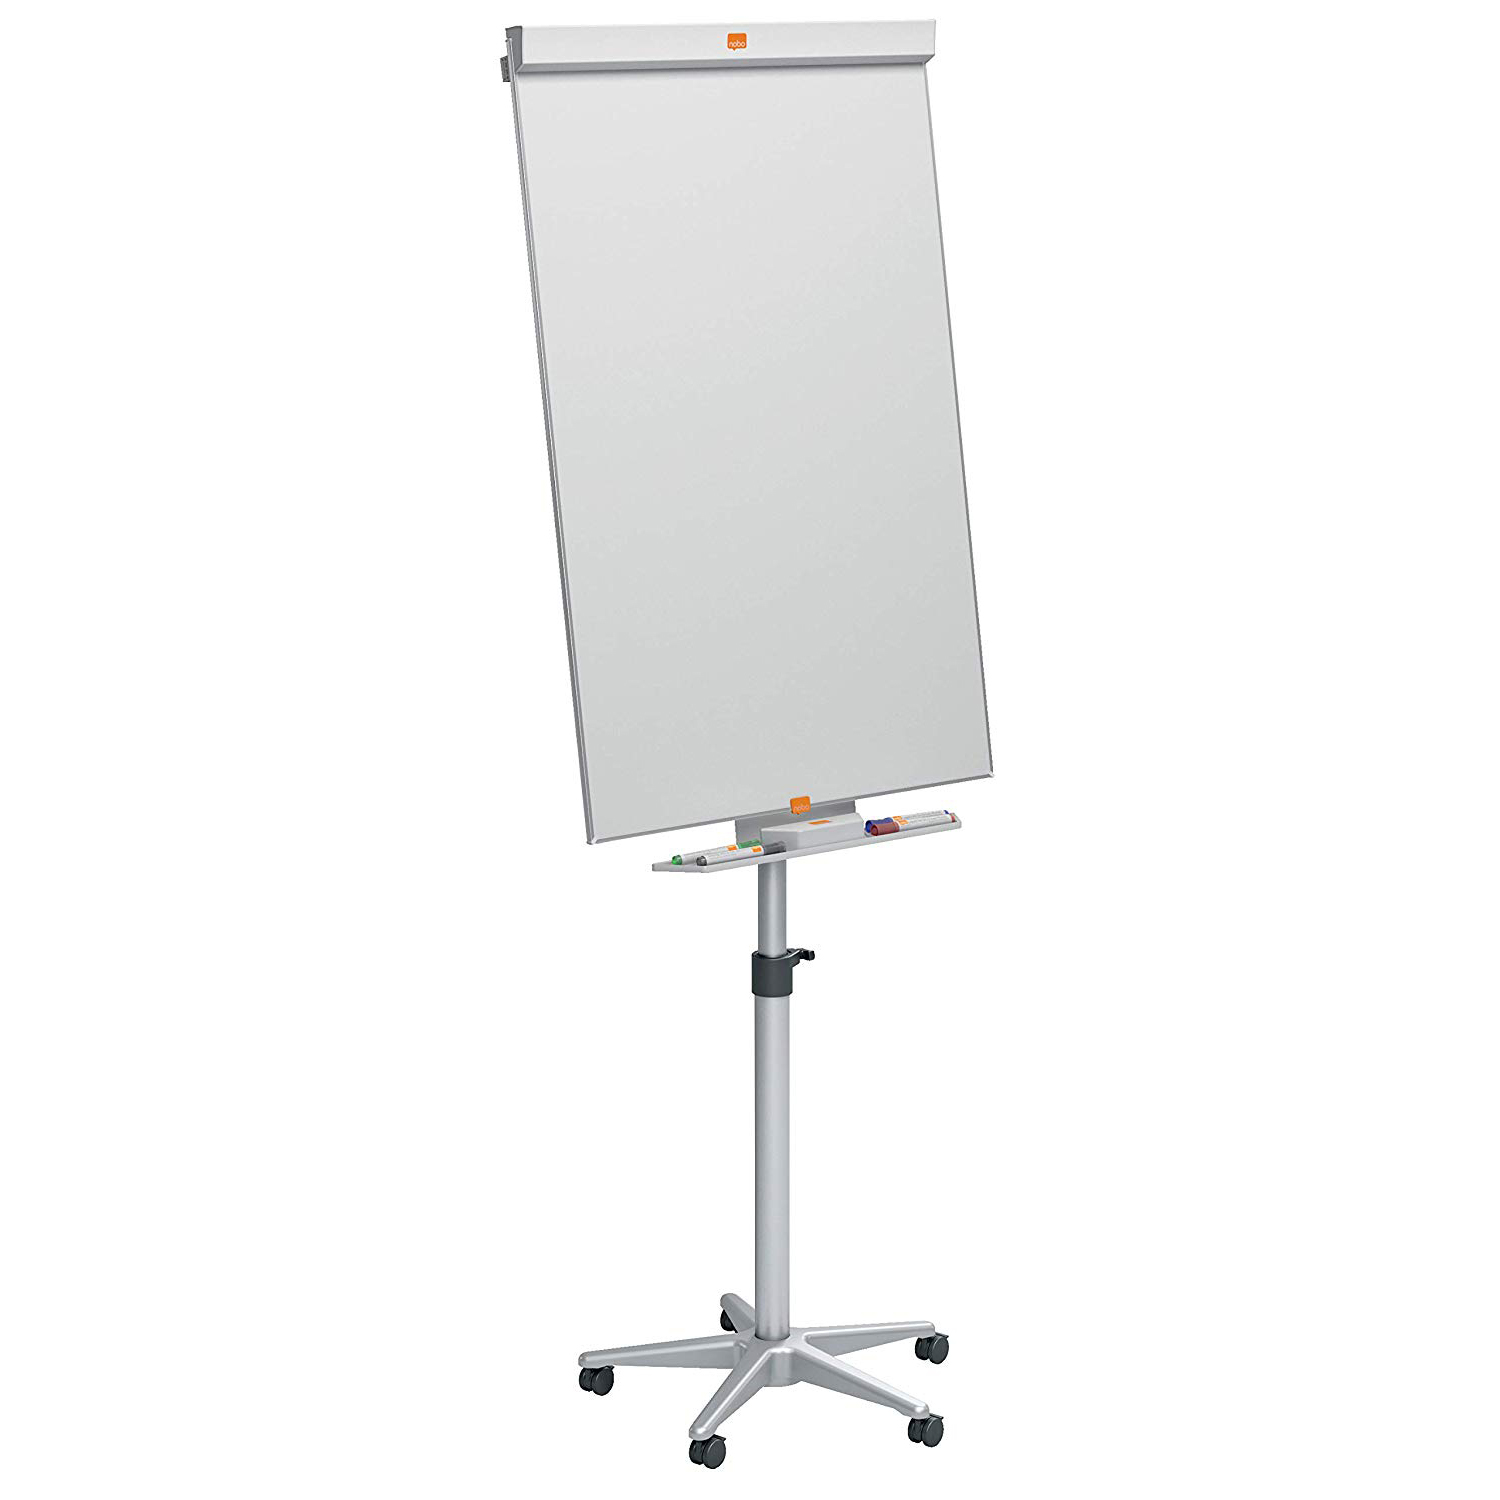 Buy Nobo Barracuda Flipchart Easel With Wheels 100 X 70cm Pc 100 X 70cm Pc Online Aed550 From Bayzon